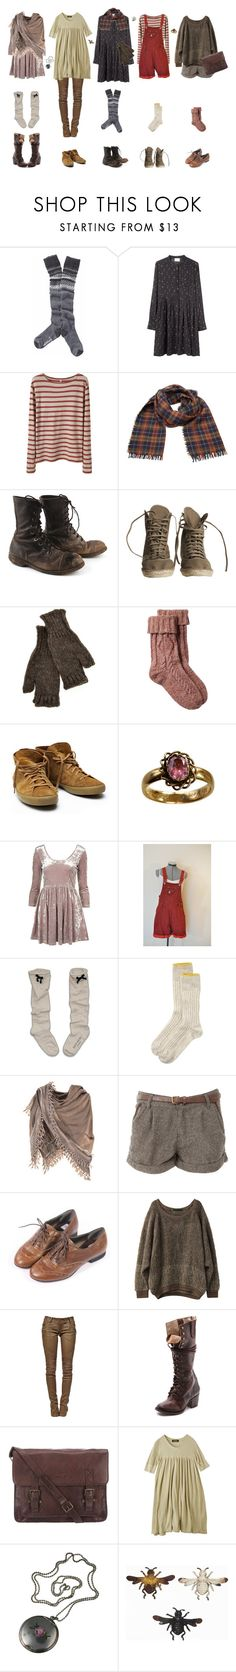 """""""The Baker Girl"""" by vogelprinz ❤ liked on Polyvore featuring Smartwool, Band of Outsiders, R13, Étoile Isabel Marant, SULTAN WASH, Inverni, Fat Face, Toast, J. Peterman and Ganzi"""